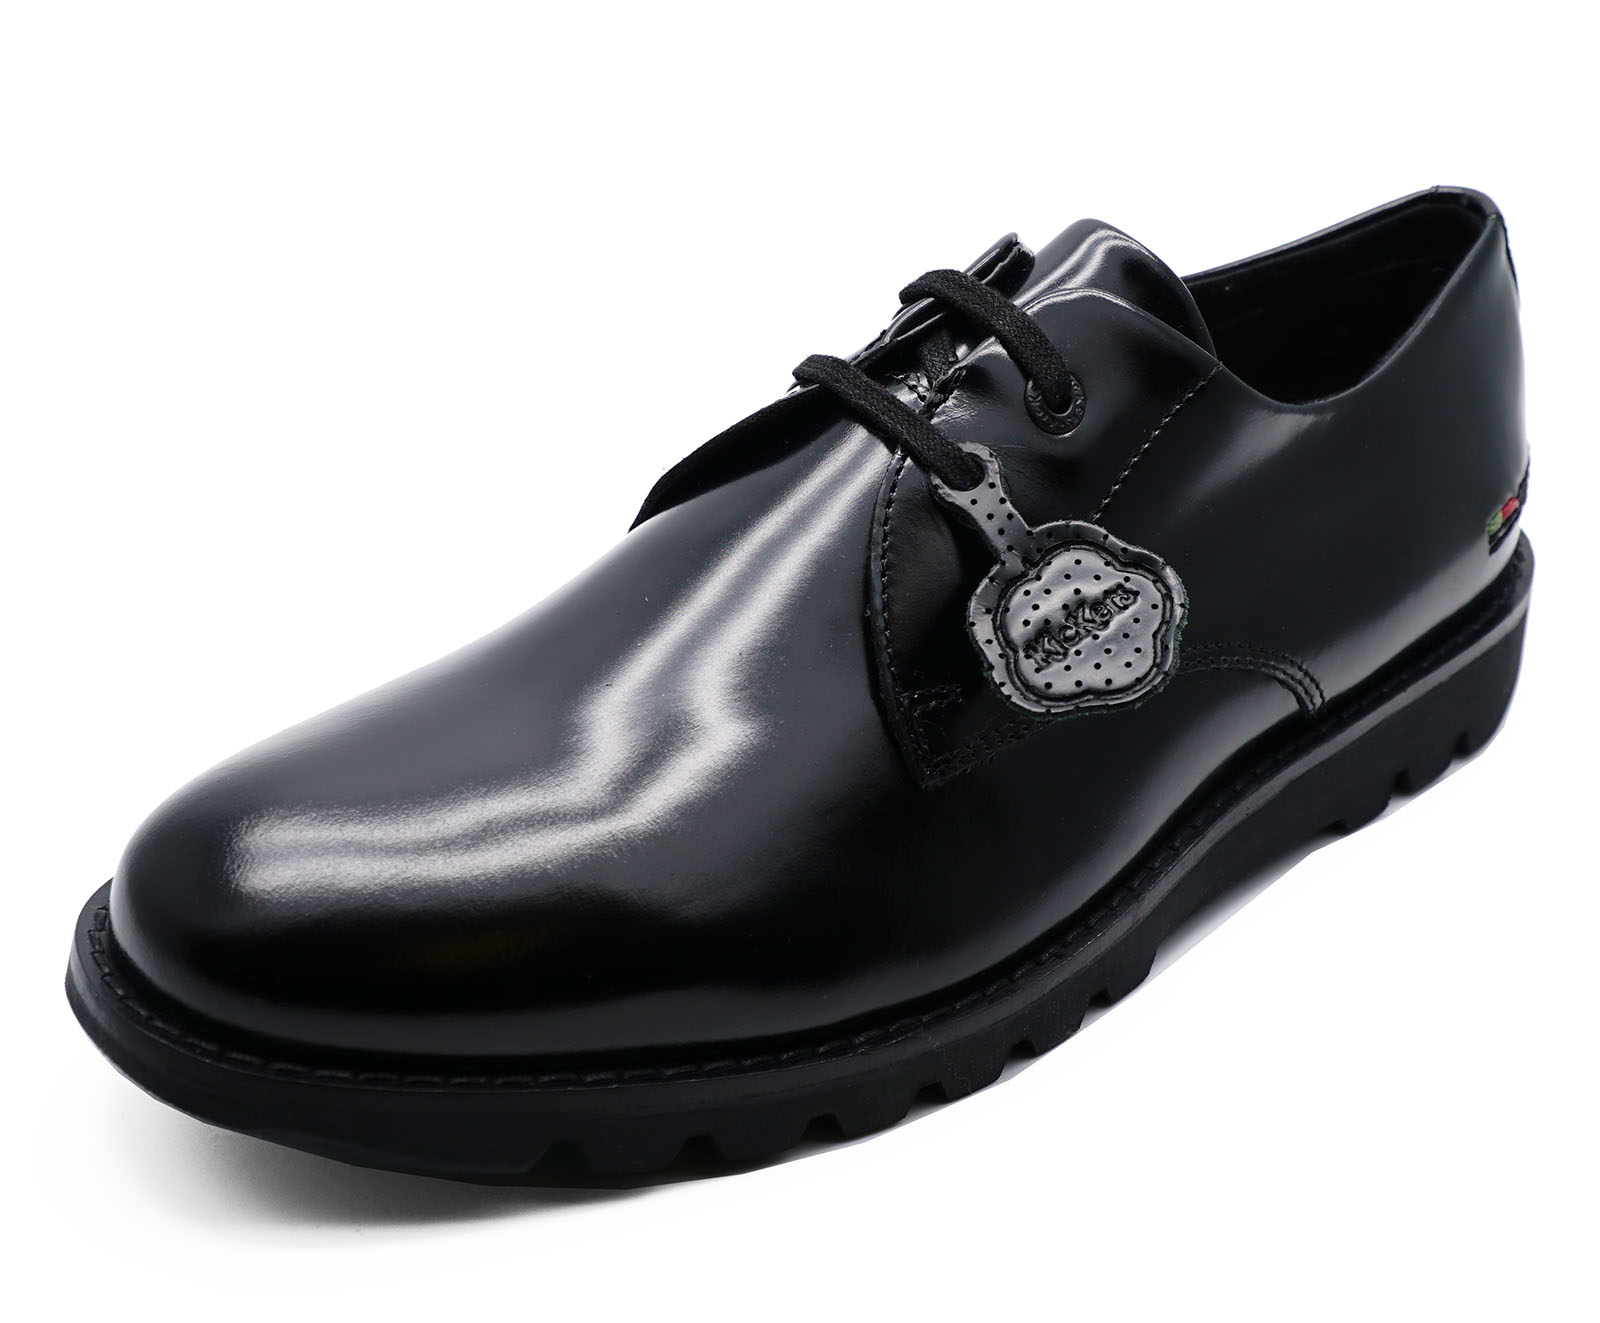 MENS-BLACK-KICKERS-KYMBO-LACE-UP-HI-SHINE-LEATHER-SMART-DERBY-SHOES-SIZES-40-46 thumbnail 8